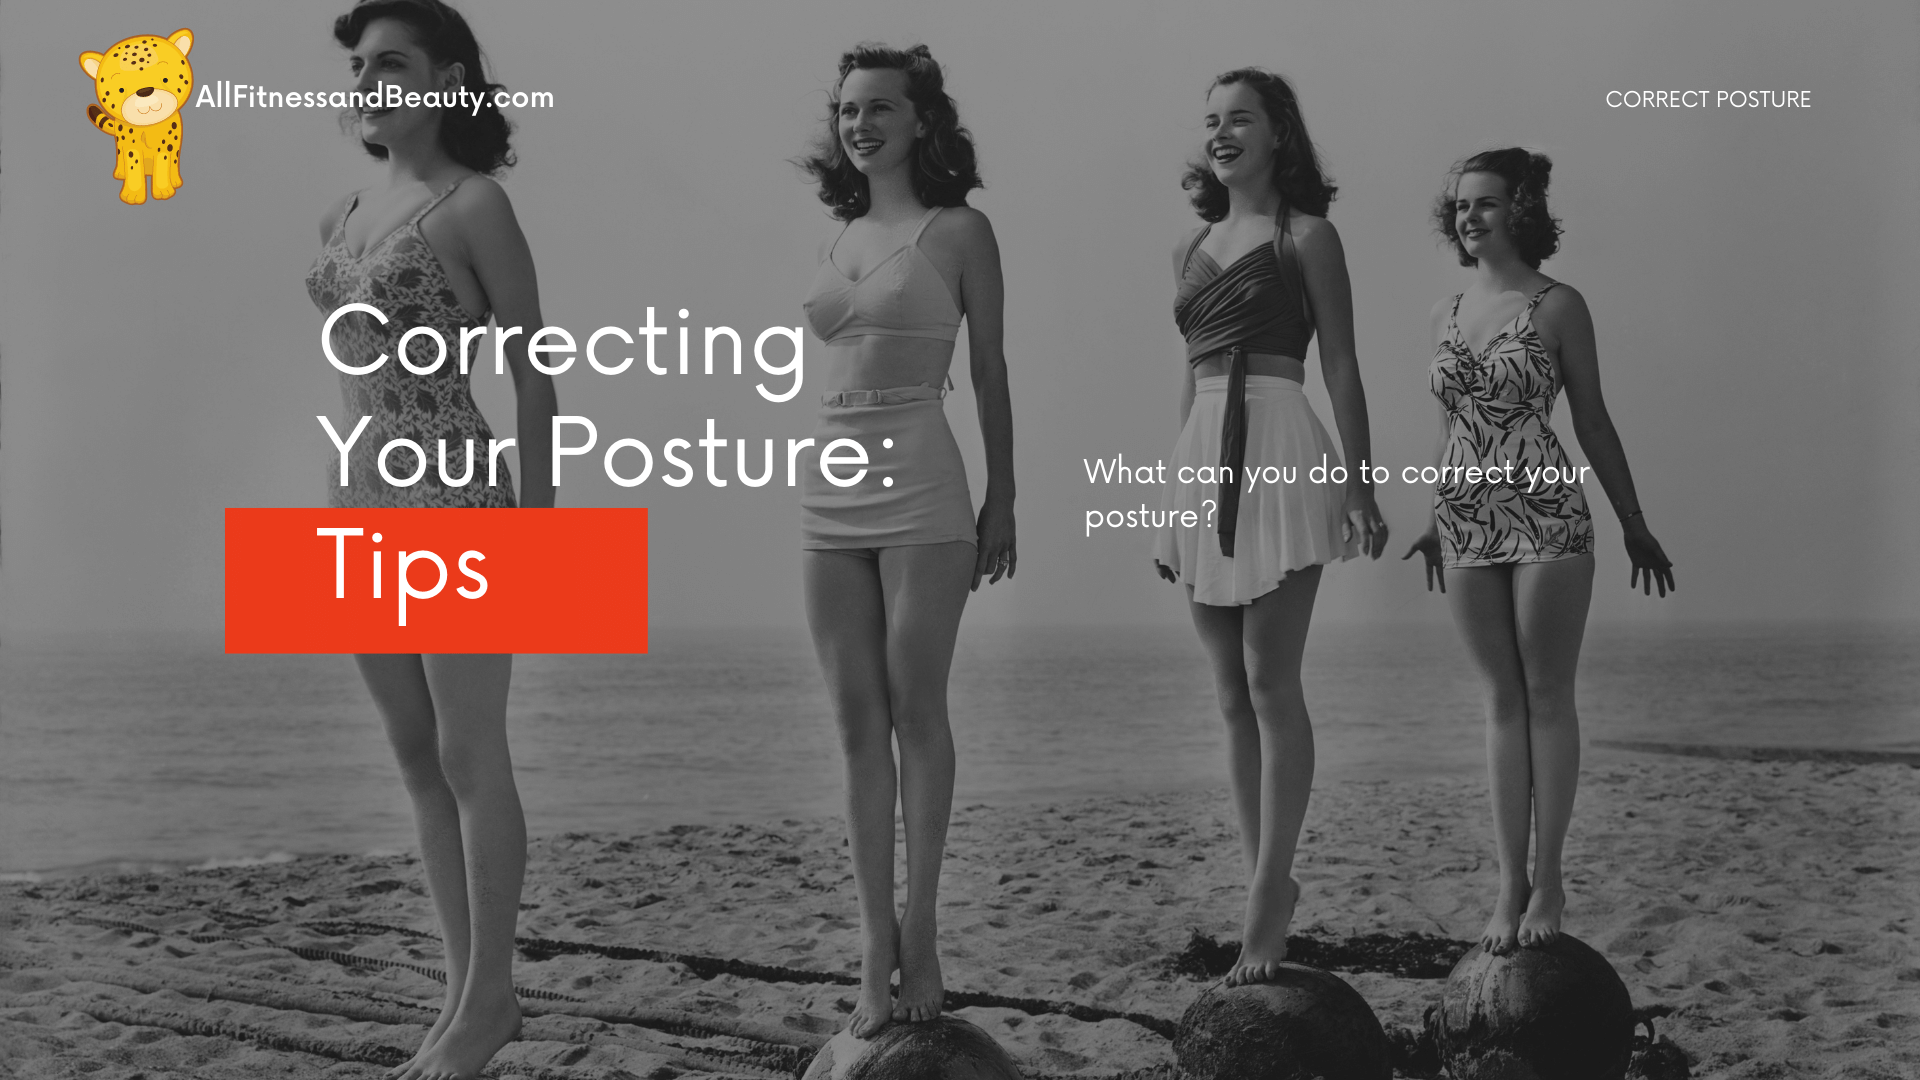 how can i correct my posture